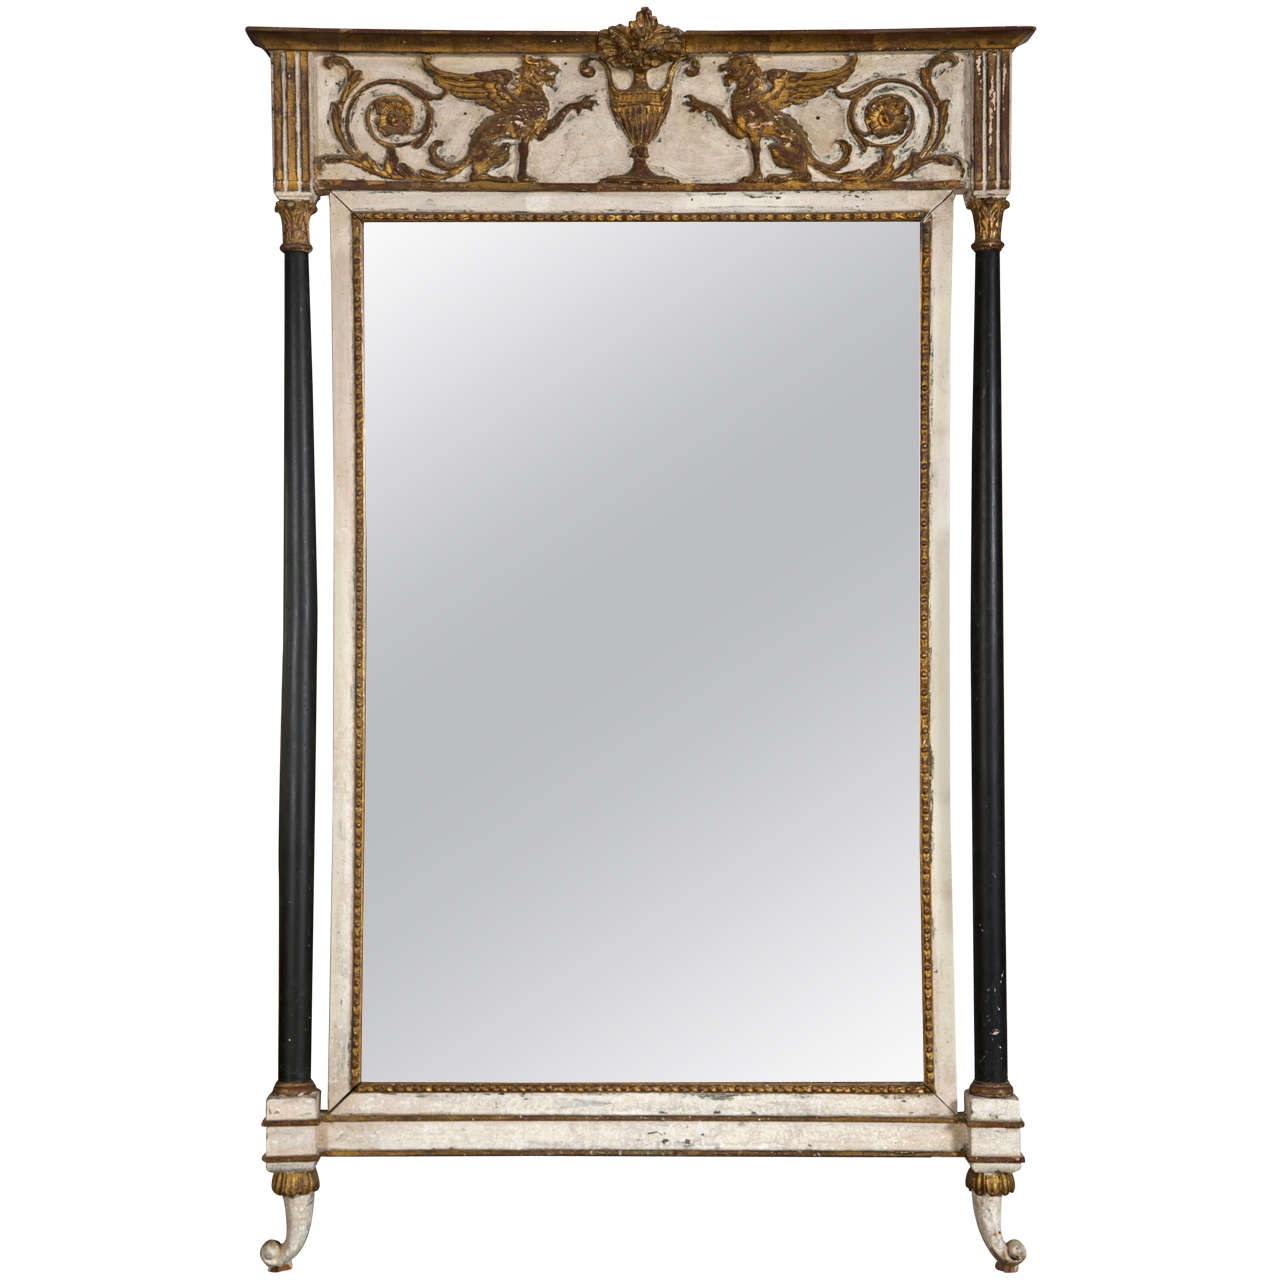 Mirror gold and white italy at 1stdibs for White and gold mirror